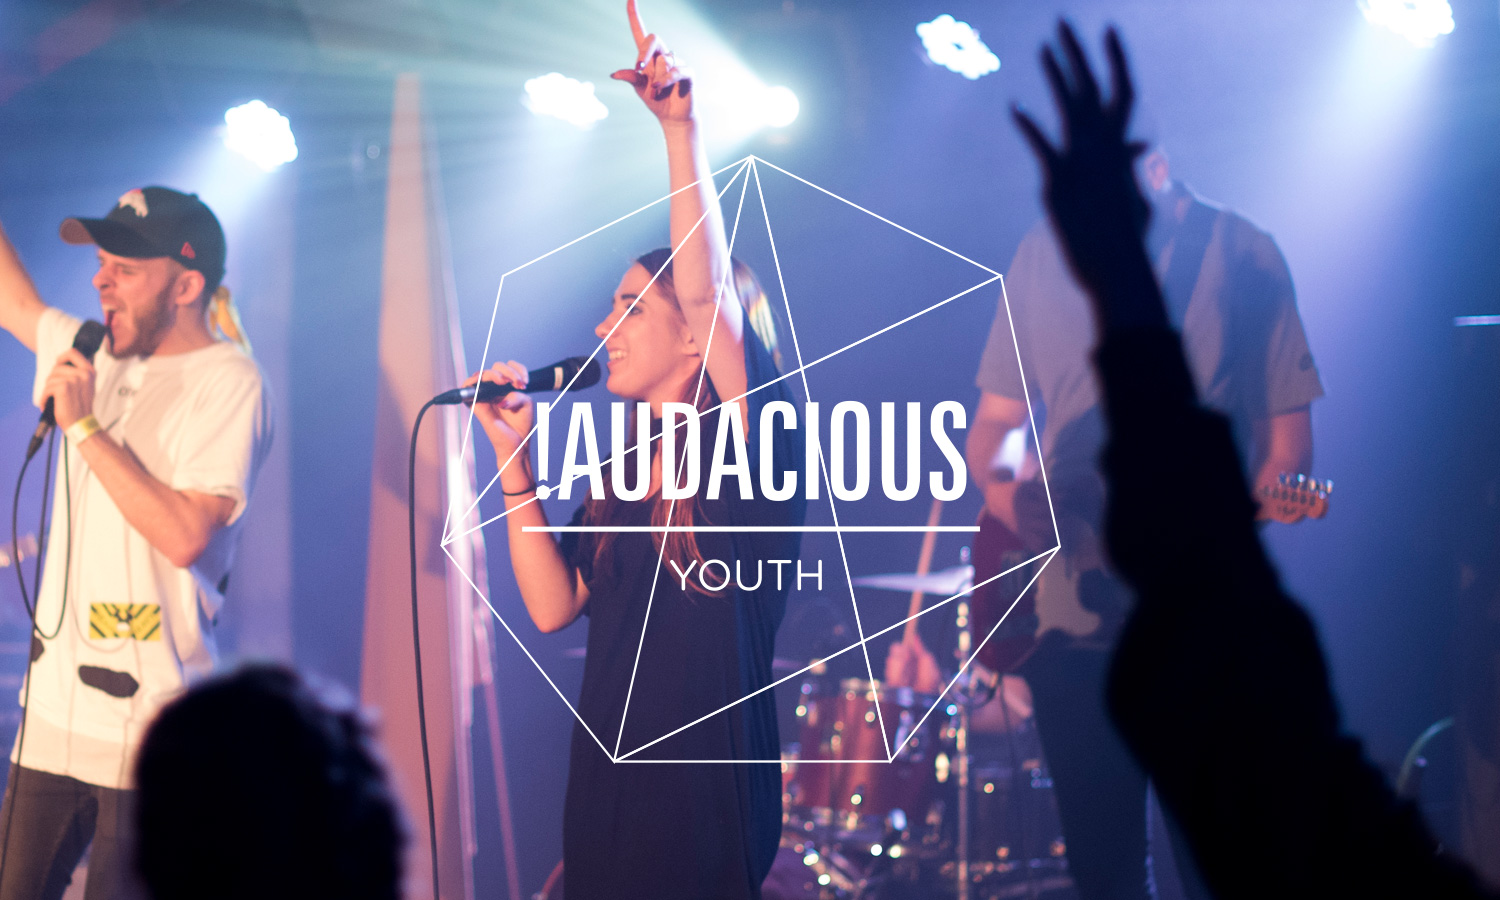 Friday 15th February – 7.30-9.30pm – !Audacious Youth – Manchester